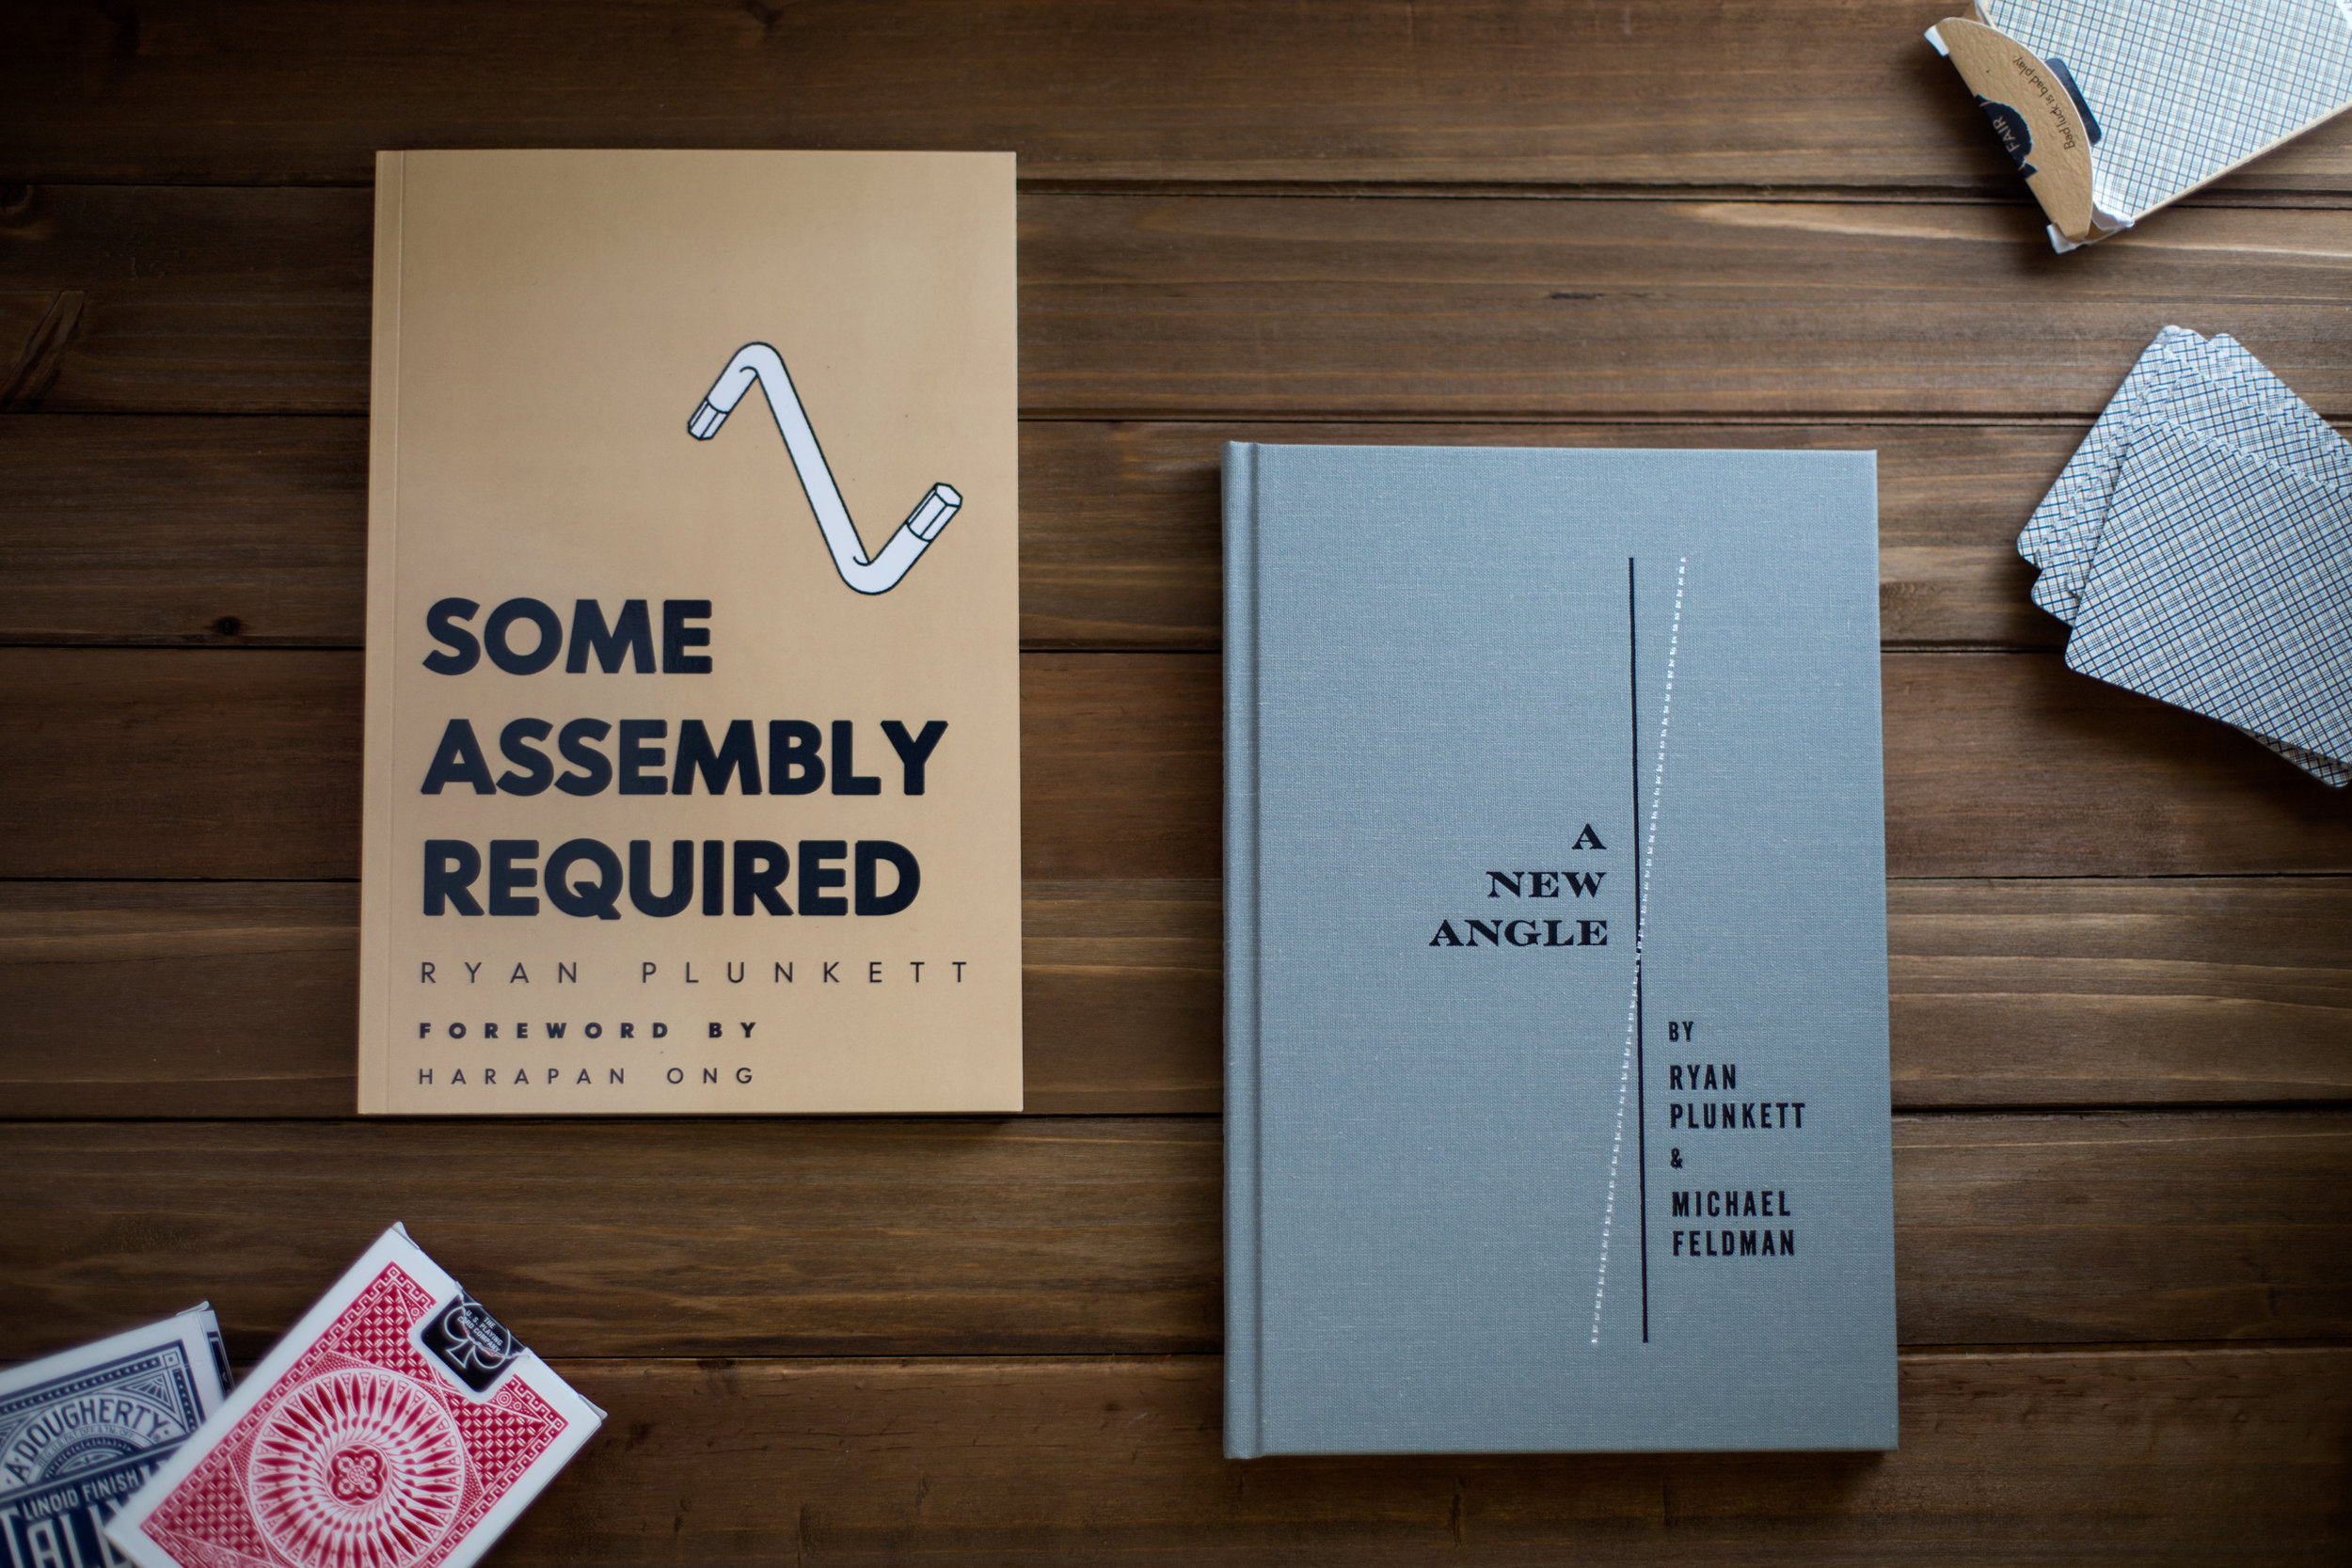 A New Angle By Ryan Plunkett & Michael Feldman / Some Assembly Required By Ryan Plunkett